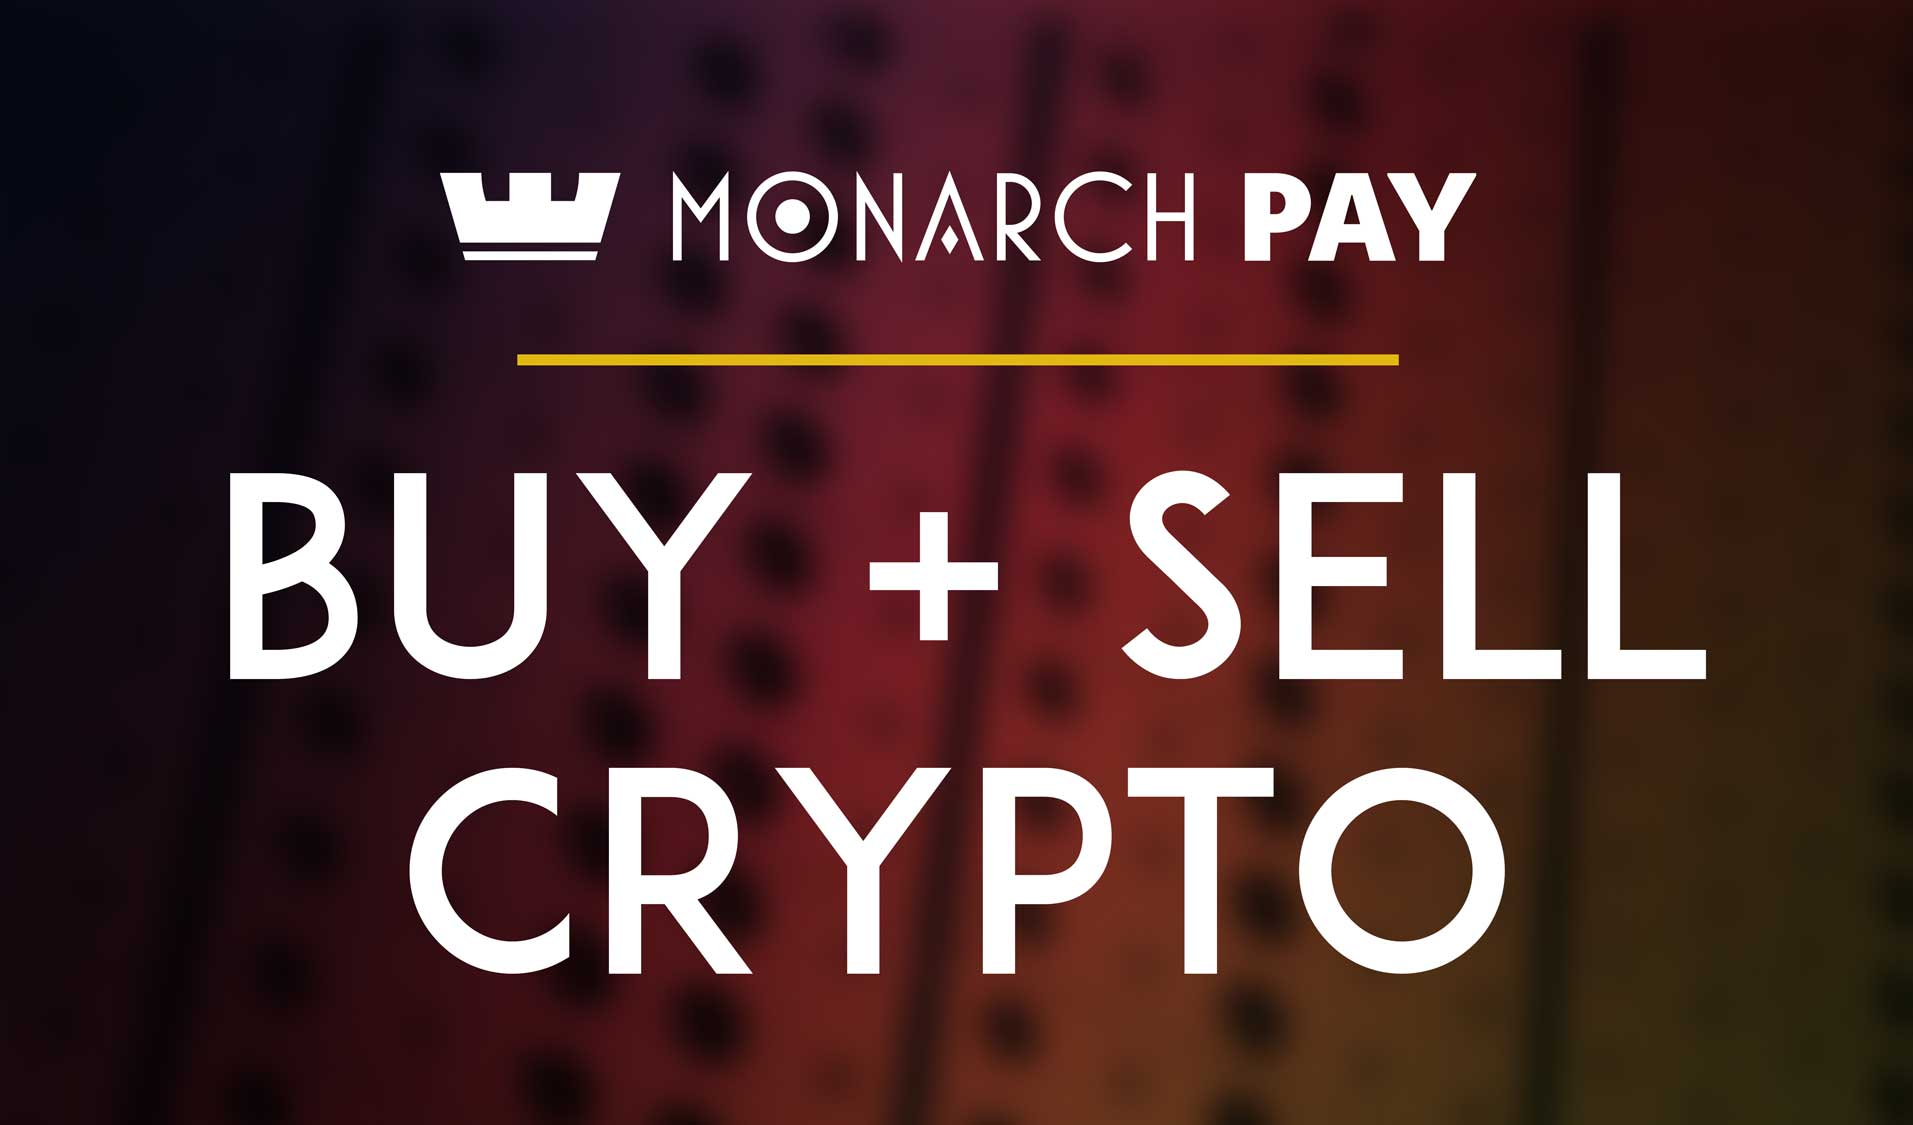 MonarchPay Allows Users To Buy And Sell Crypto While Holding Their Private Keys